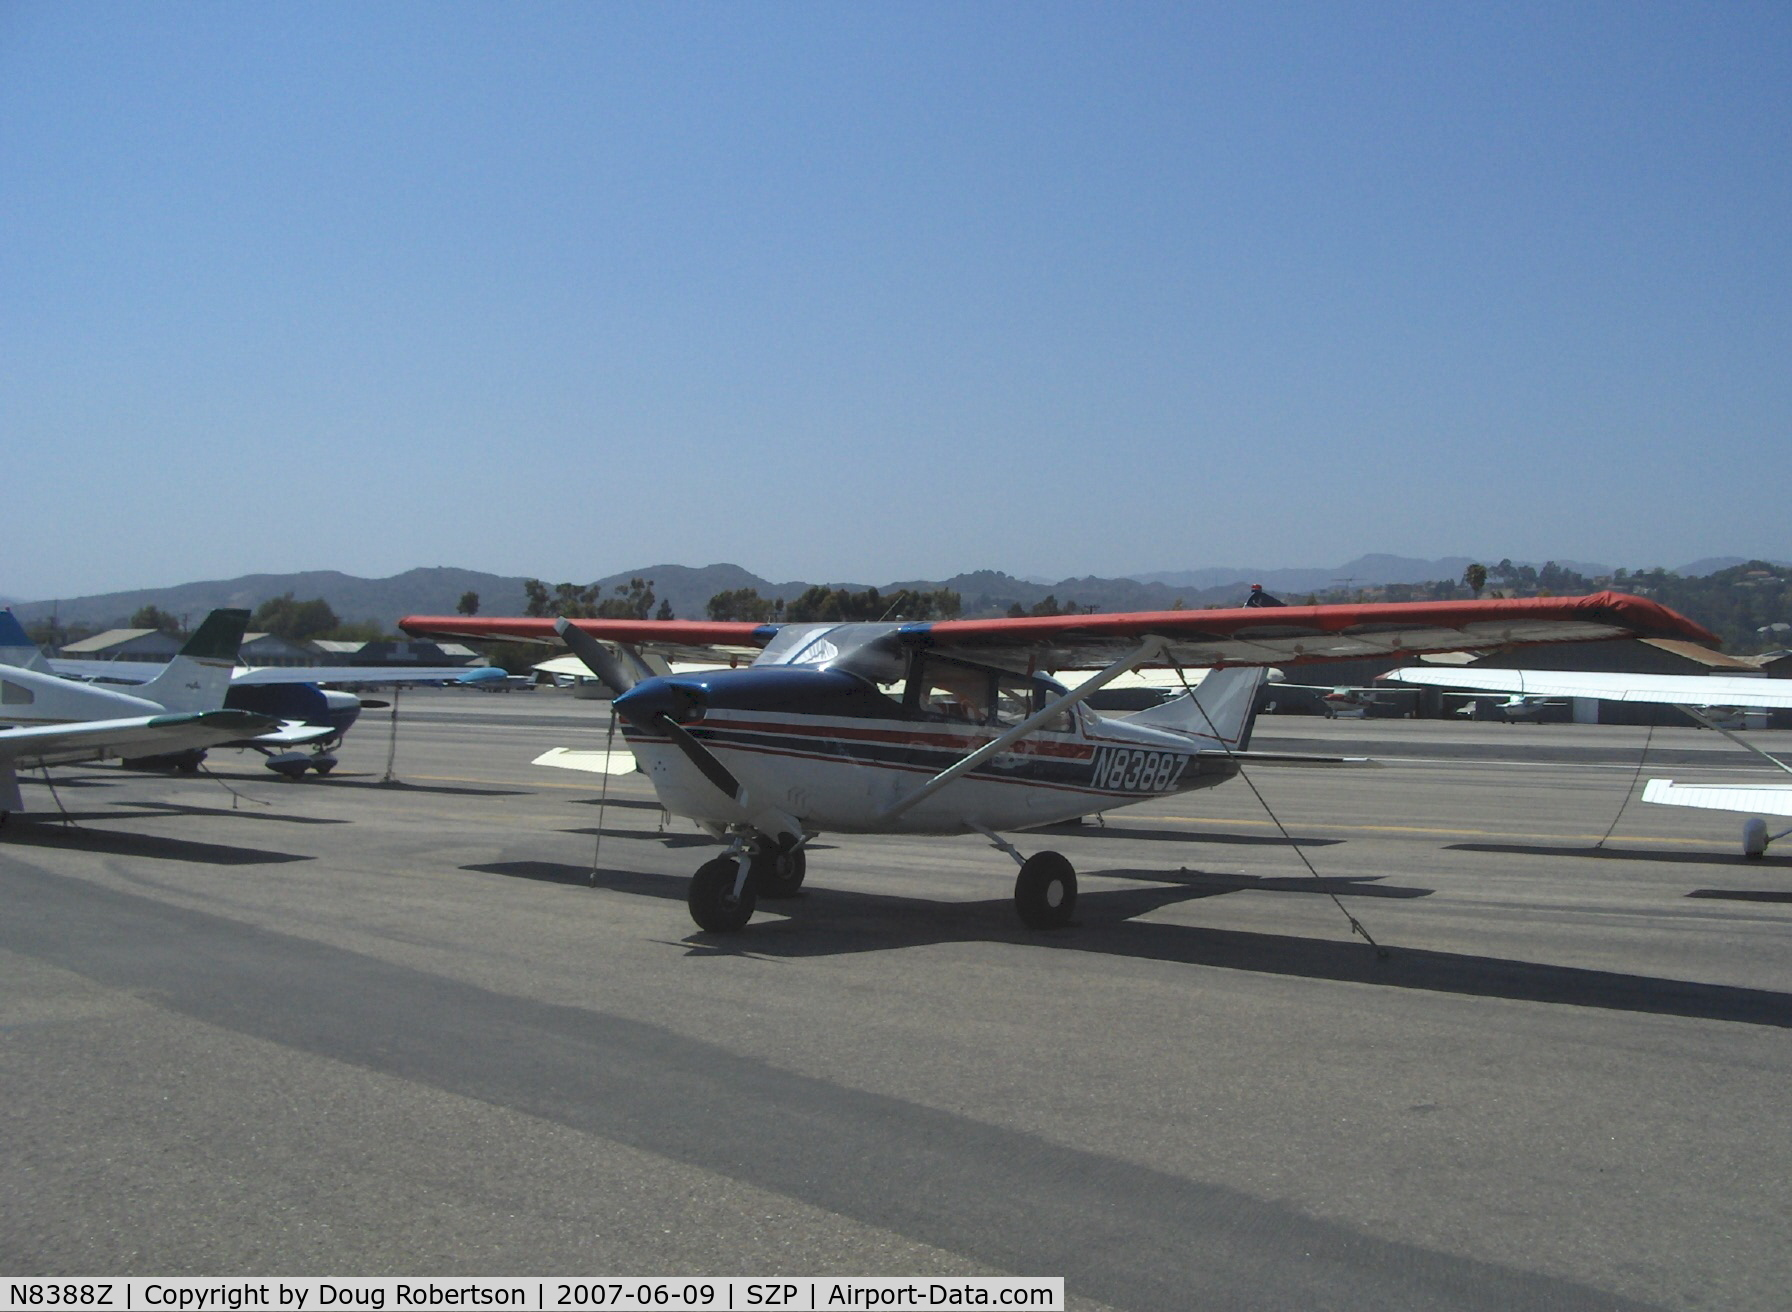 N8388Z, 1963 Cessna 210-5 C/N 205-0388, 1963 Cessna 210-5 (205) UTILINE (fixed gear version of C210) Continental IO-470-E 260 Hp